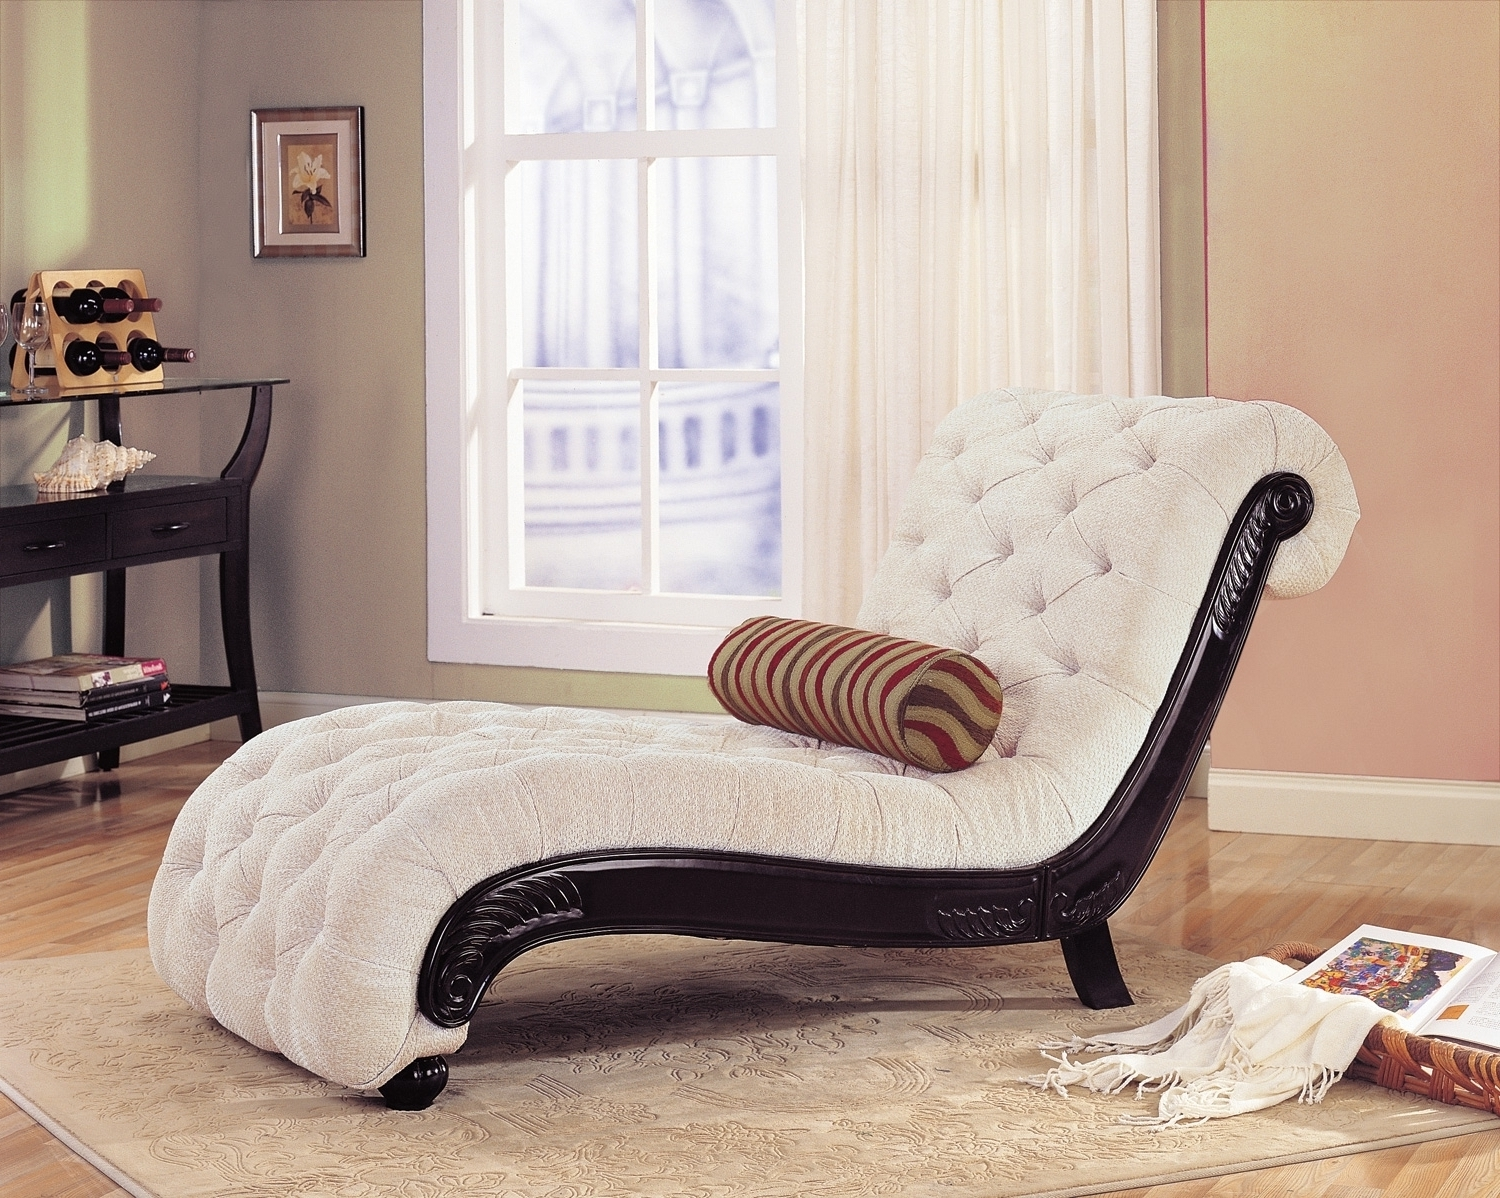 Lounge Chair Living Room Cozy Brilliant Chaise Lounge Chairs For In Popular Chaise Lounge Chairs For Living Room (View 8 of 15)